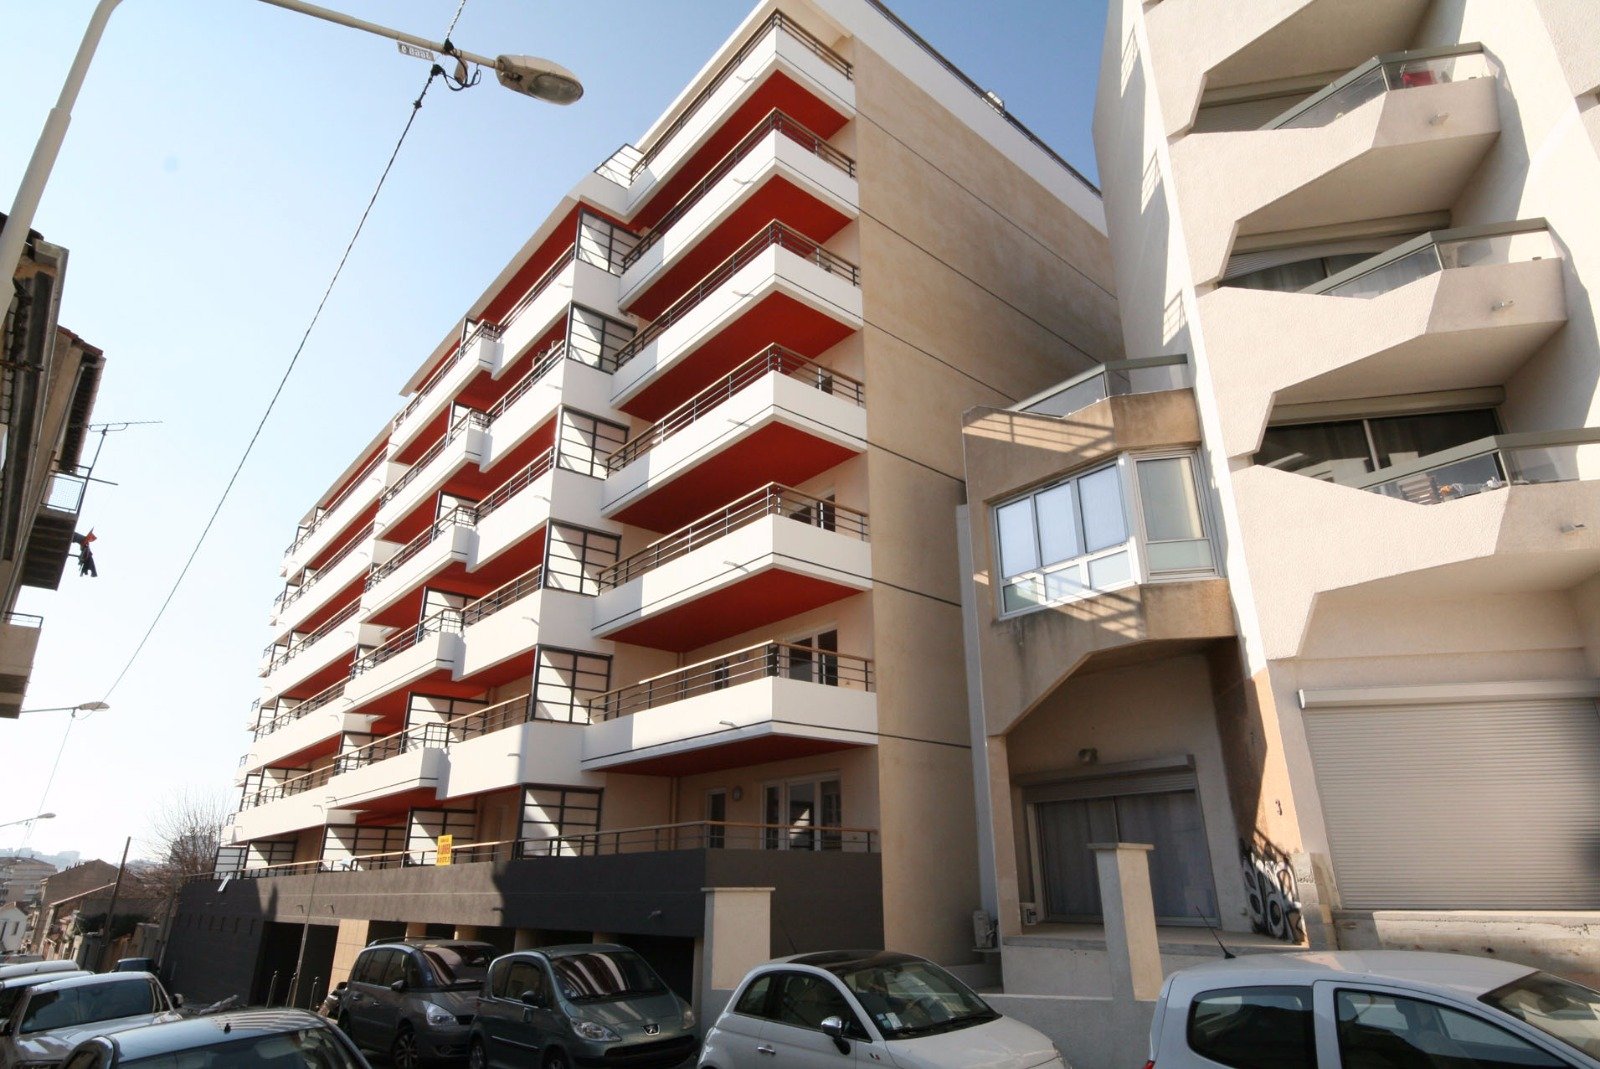 location marseille 13010 timone rue d 39 algesiras box en